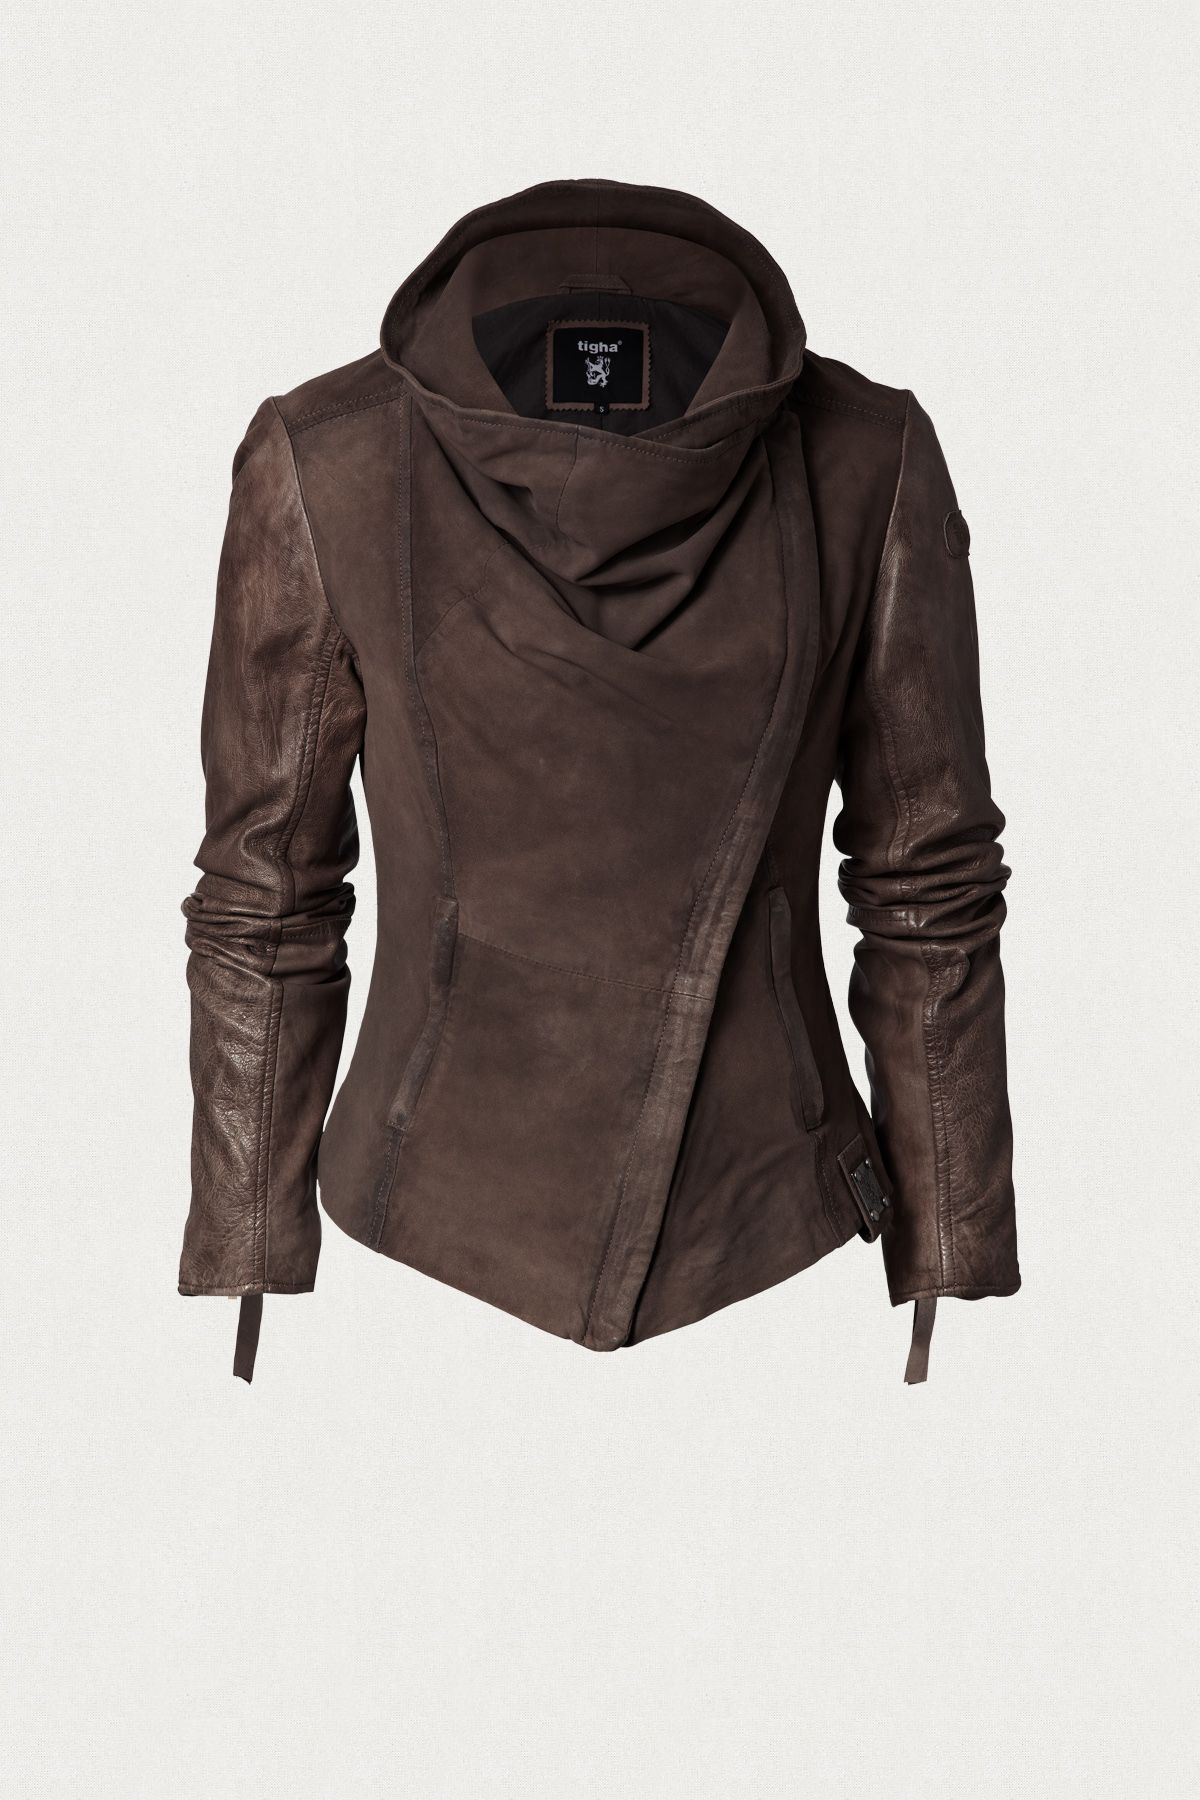 11 Chic Transitional Jackets You'll Want to Wear Nonstop This Fall |  Clothes | Pinterest | Jackets, Leather Jacket and Jacket style